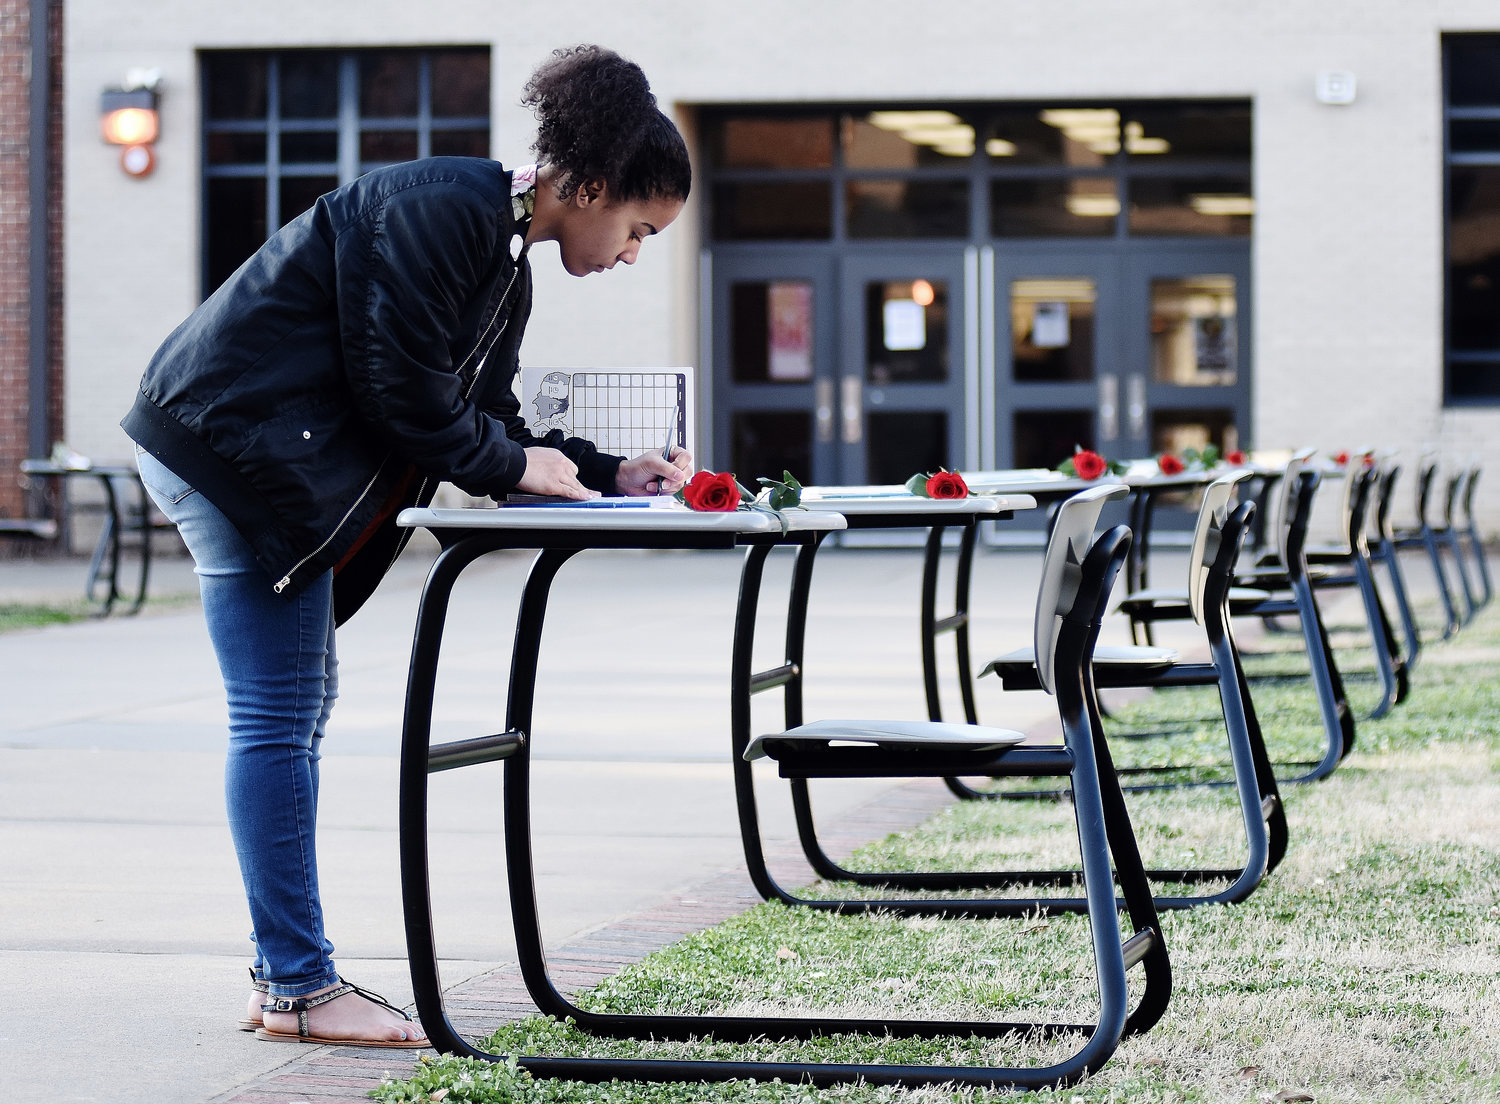 Cartersville High School senior Terrika Morris writes a letter to the family of one of the victims of the Feb. 14 shooting in Parkland, Florida. Seventeen desks were placed in the school's courtyard to represent the victims of the shooting. On each desk was a rose, a picture and name of a victim, and a notebook in which students could write messages to the families of the victims.